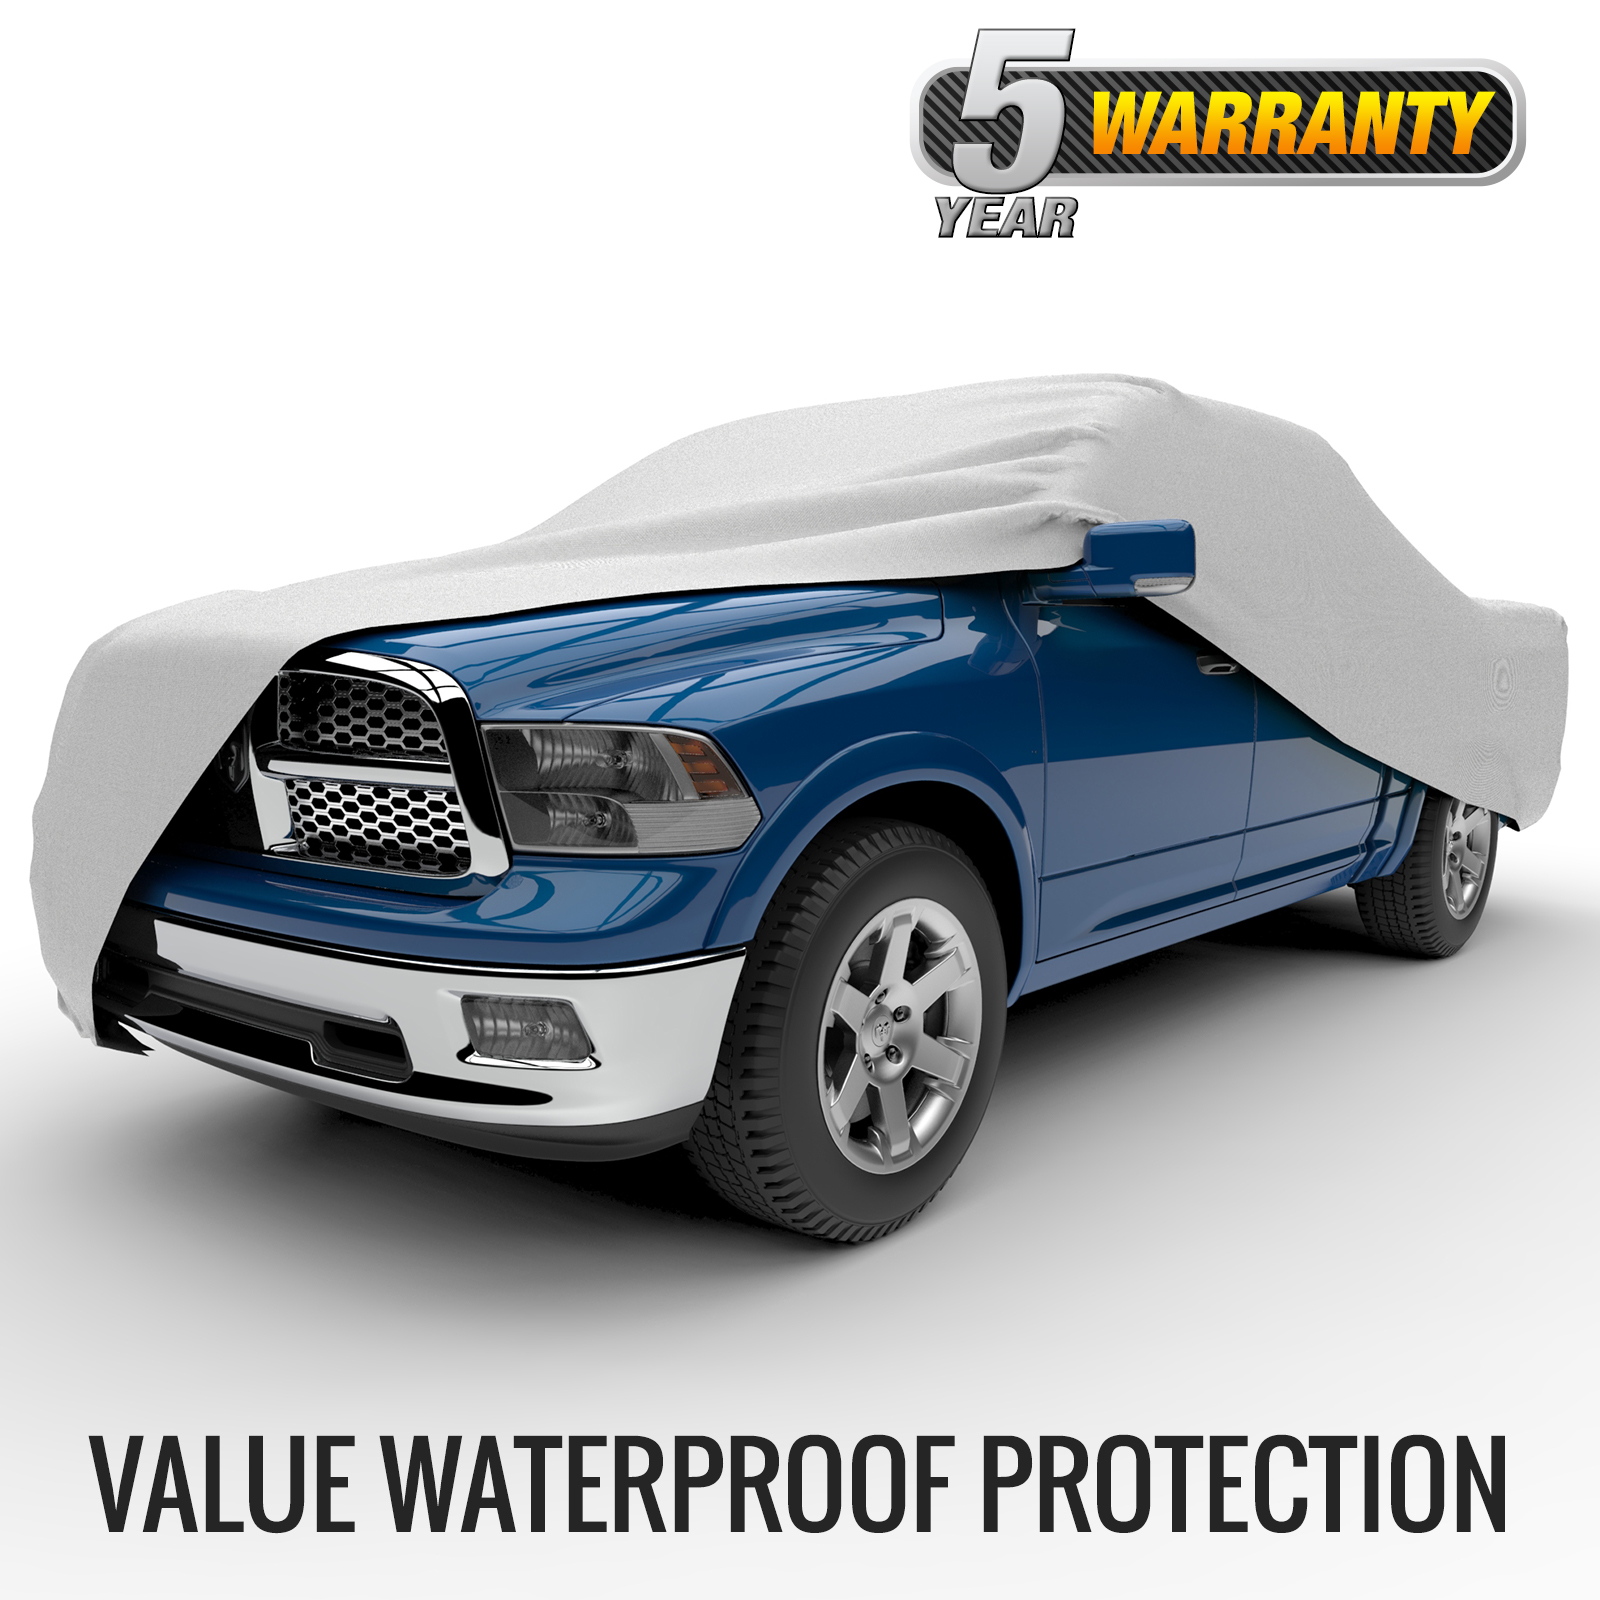 "Budge Rain Barrier Truck Cover, Waterproof Outdoor Vehicle Protection, Size T-4X: Fits up to 249"" L"